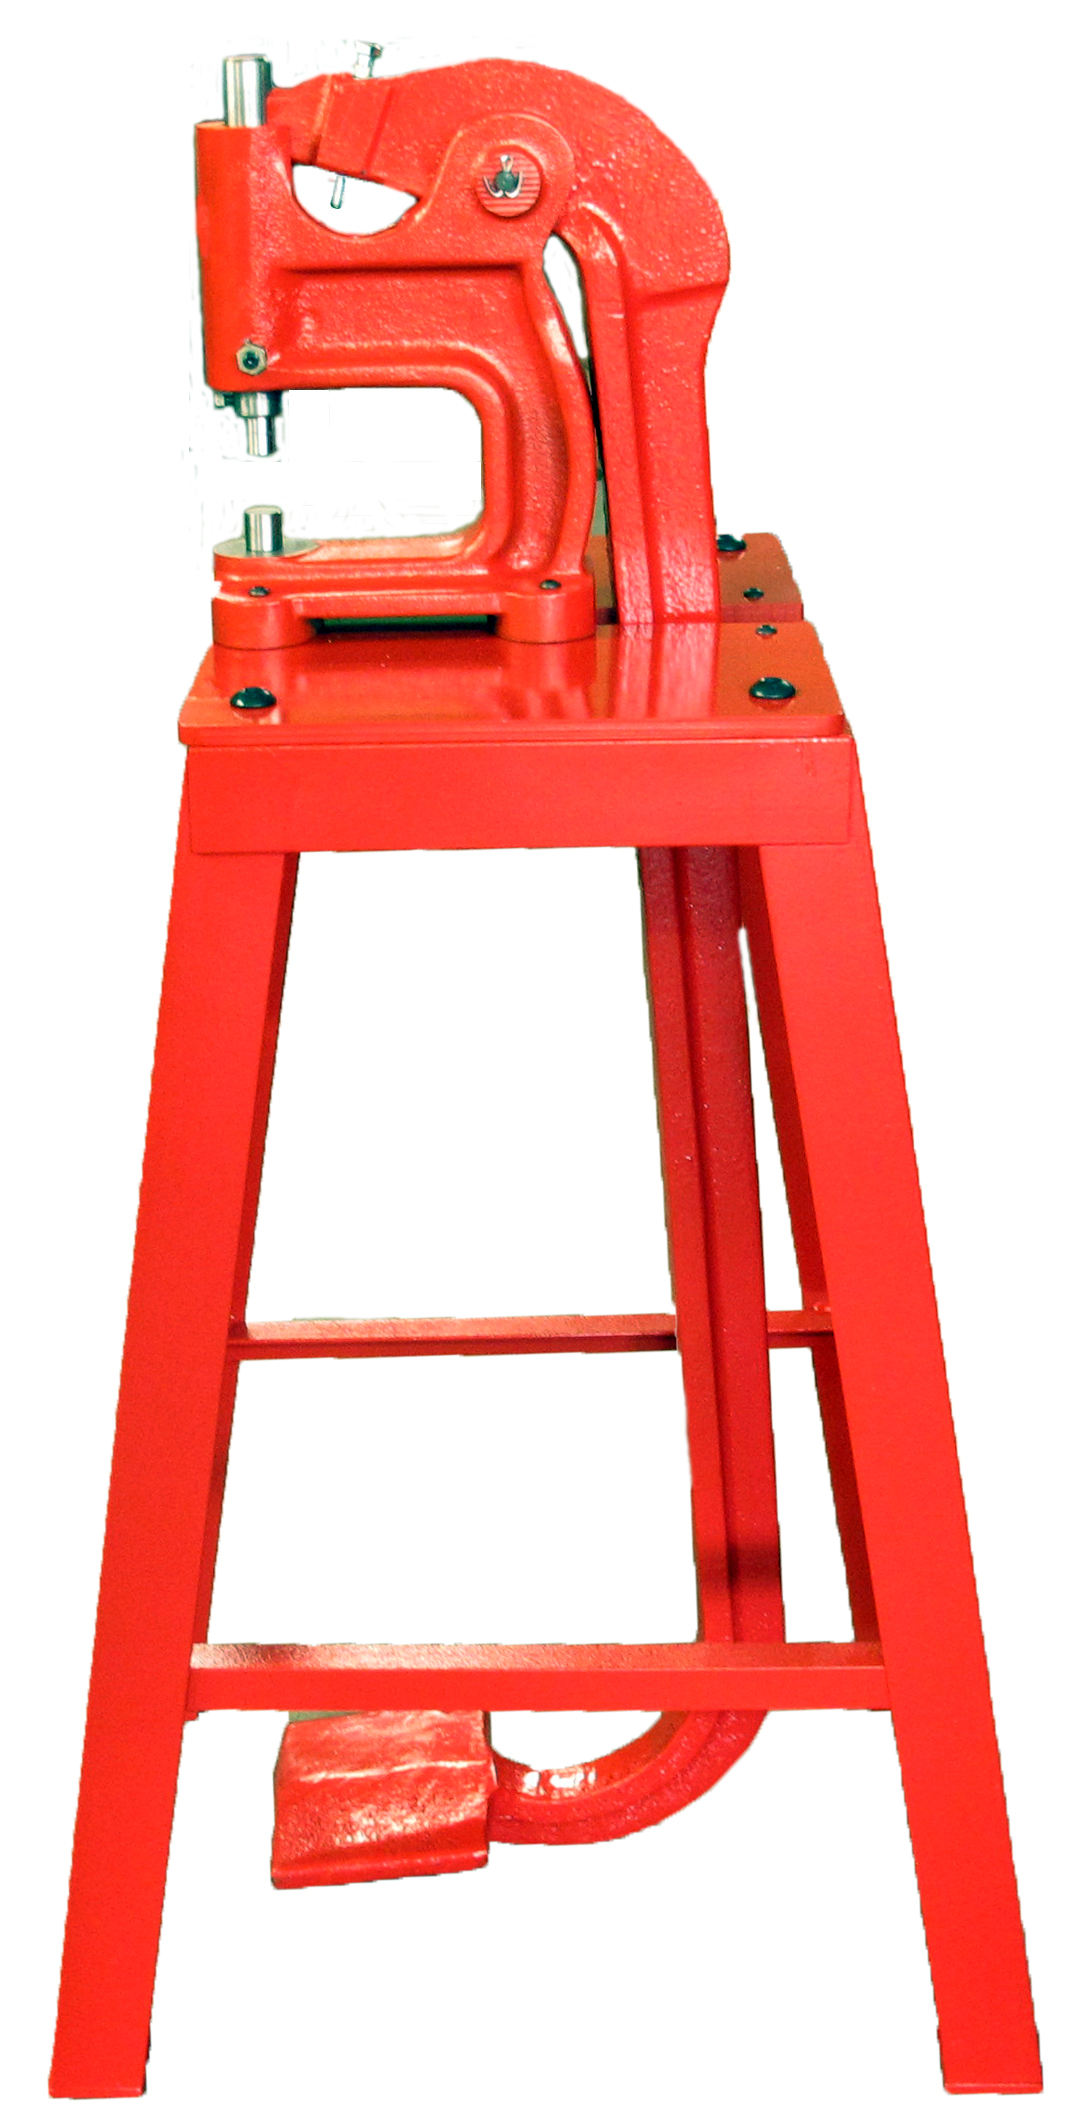 Foot Kick Press Machine for Snaps, Eyelets and Grommets from